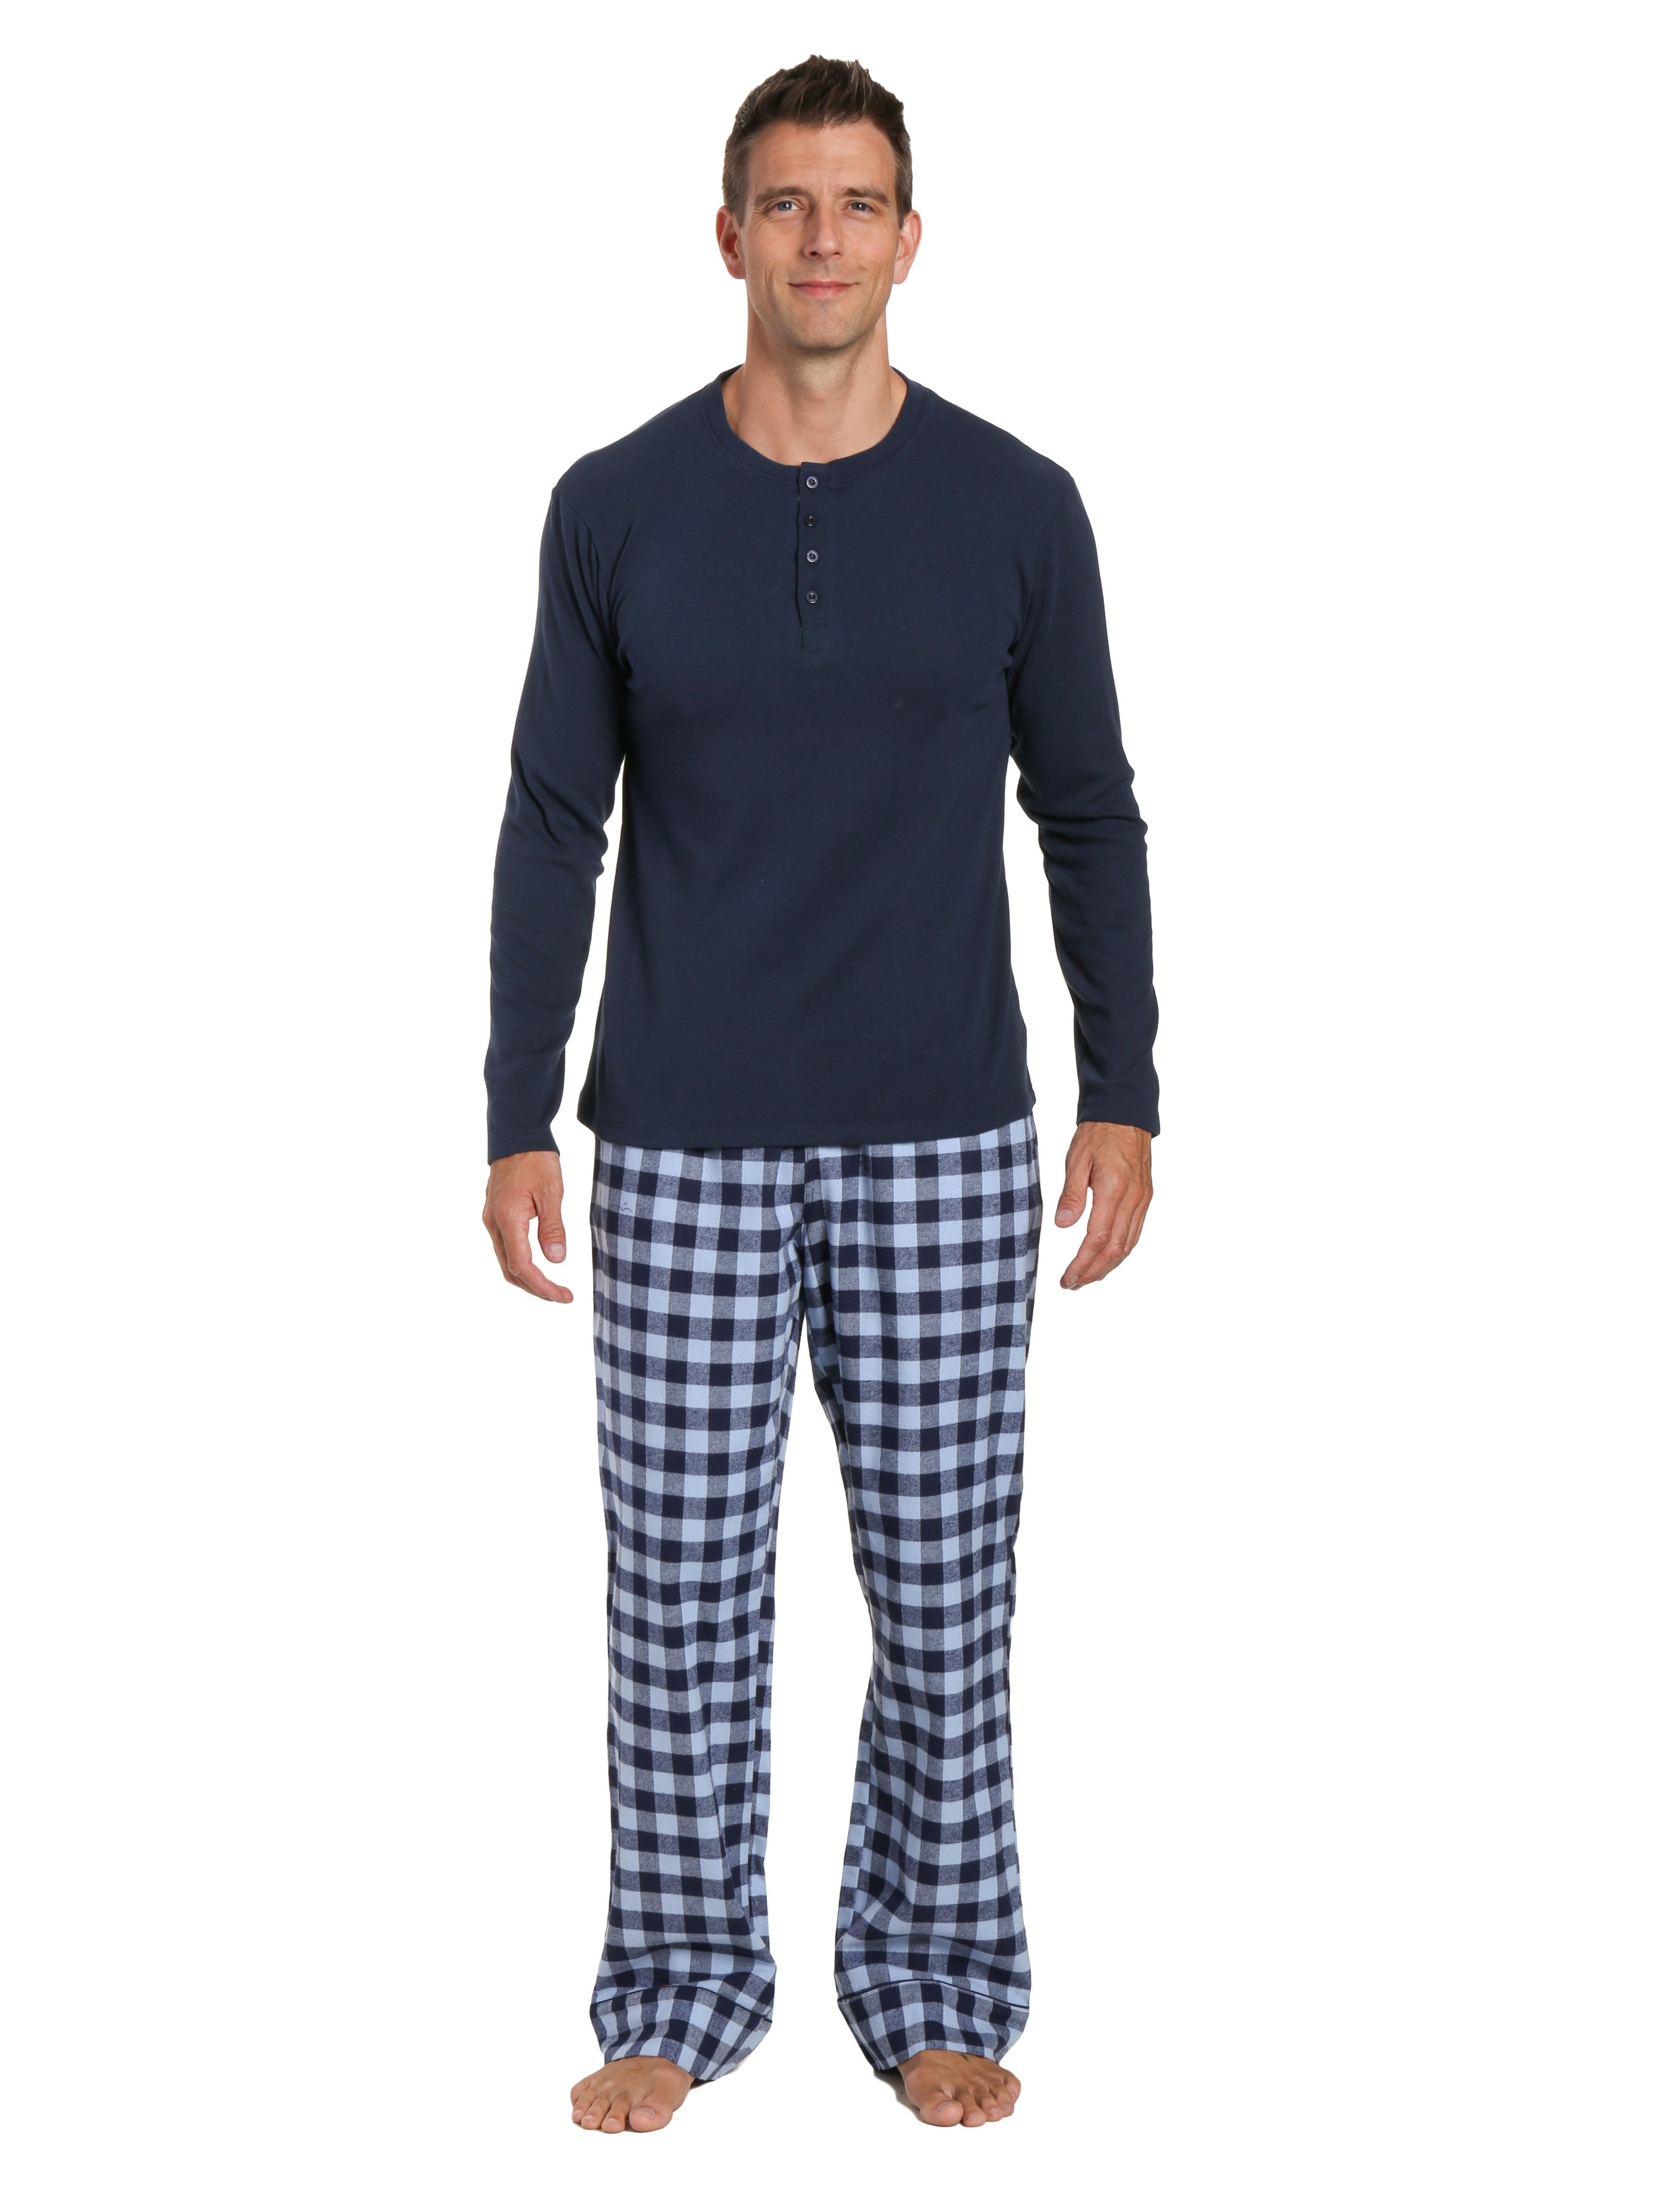 Mens Premium 100% Cotton Flannel Lounge Set